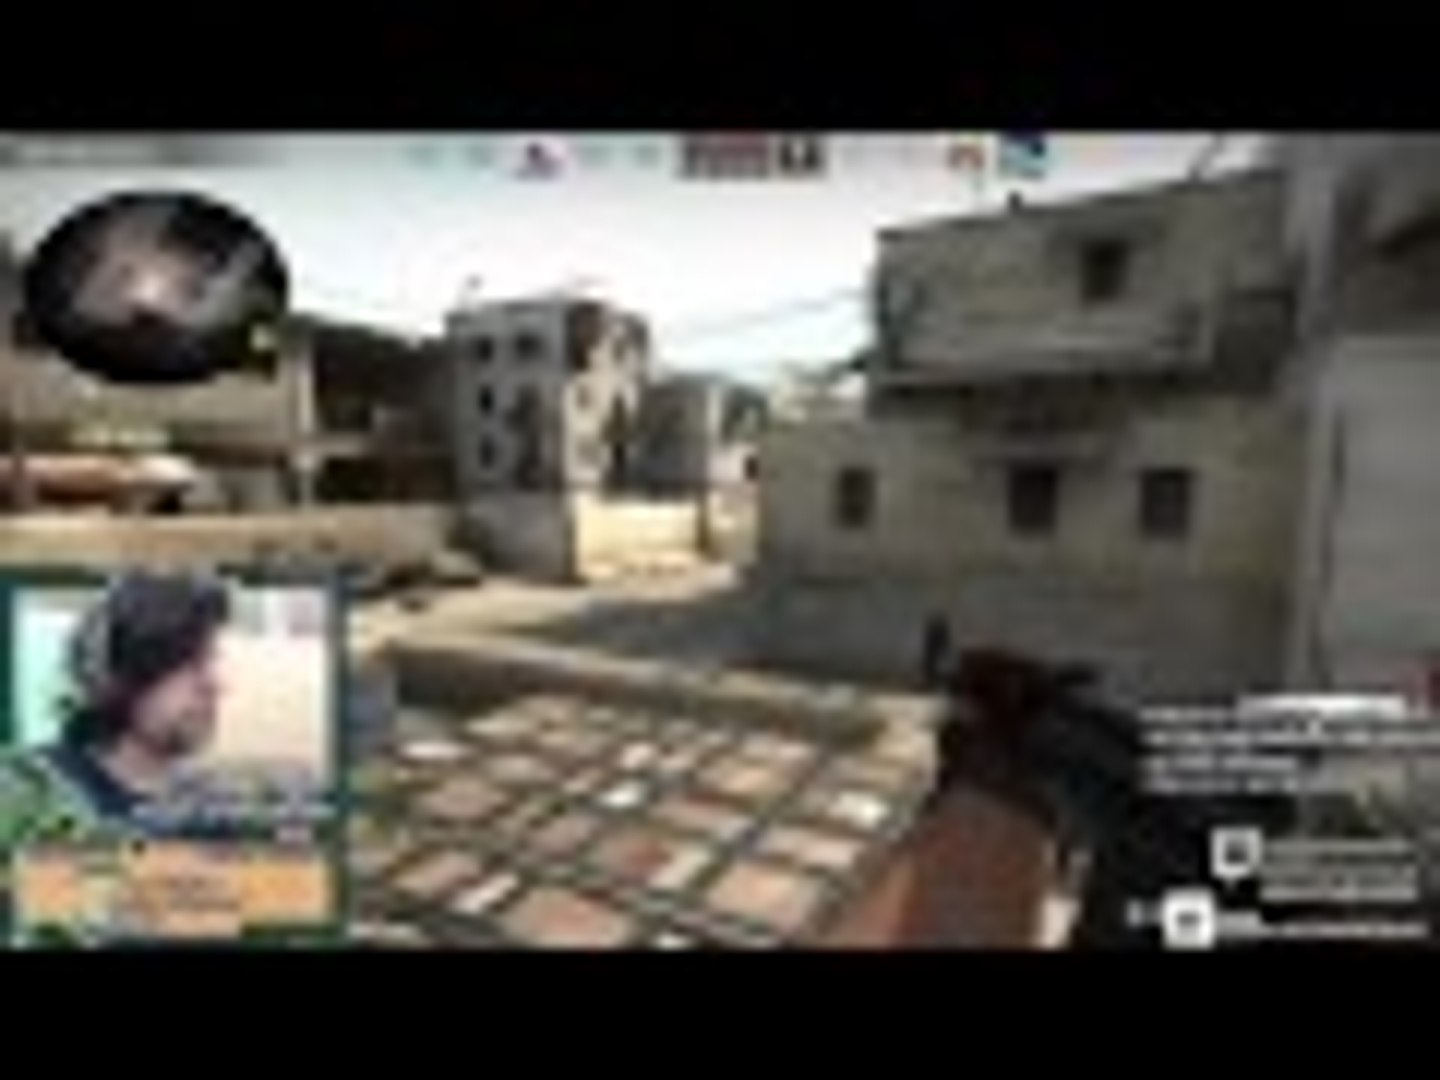 (94/365) Counter strike Global offensive {1 Year Live stream Challenge}